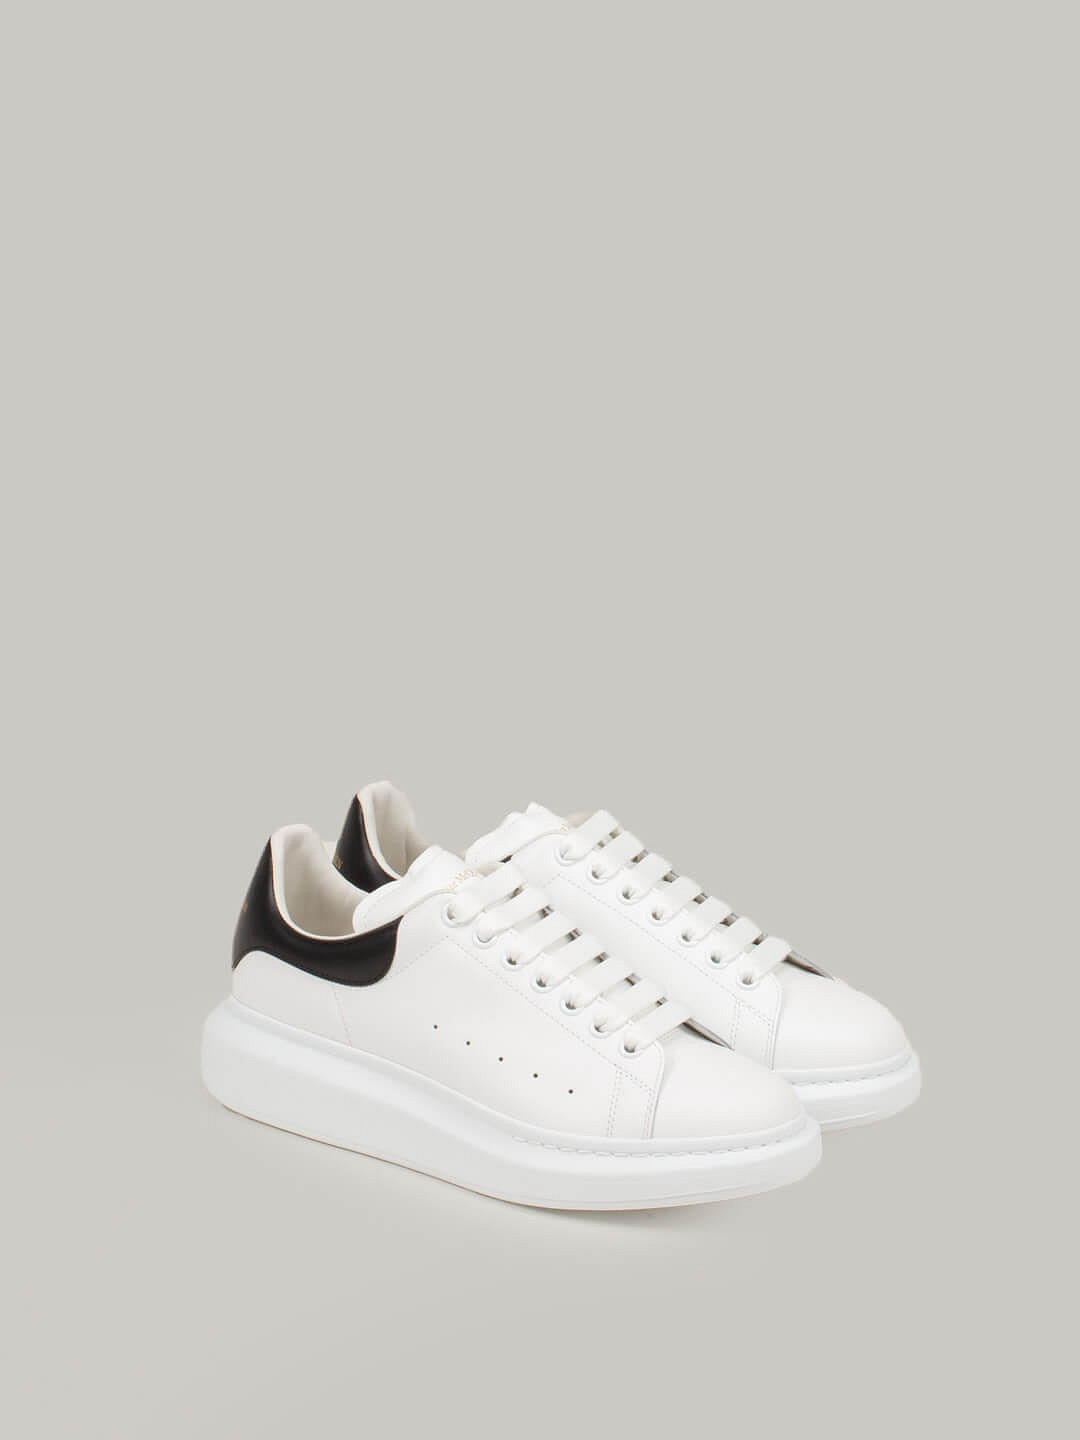 white Low Top Lace Up Sneaker black